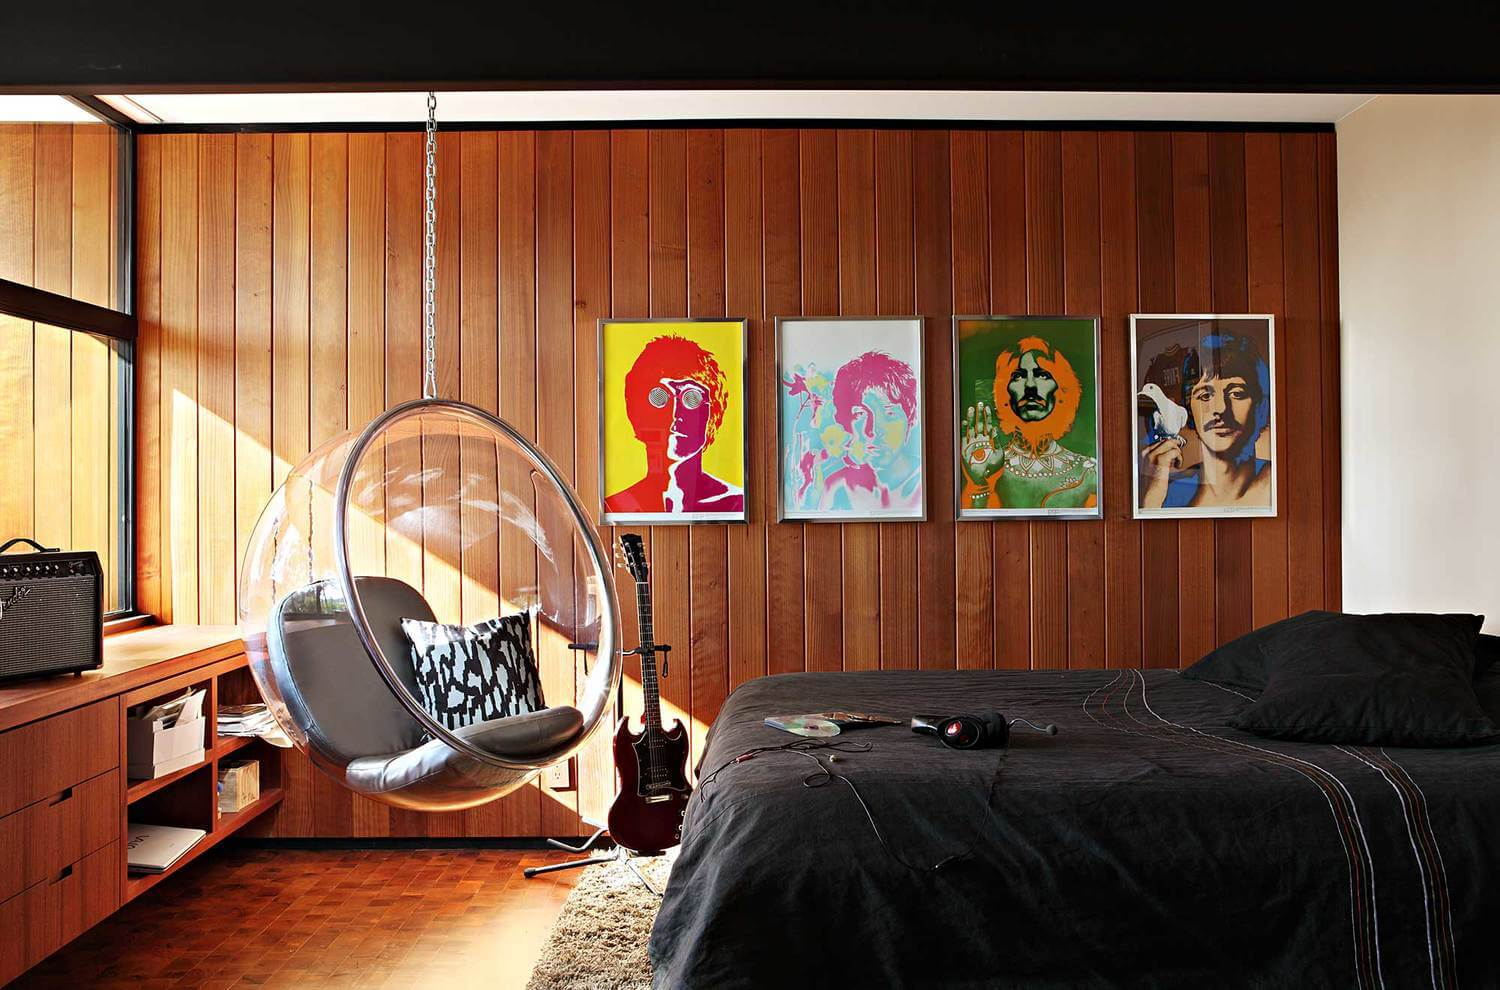 A mid-century modern primary bedroom featuring a very attractive hanging chair and a stylish black bed surrounded by rustic walls.